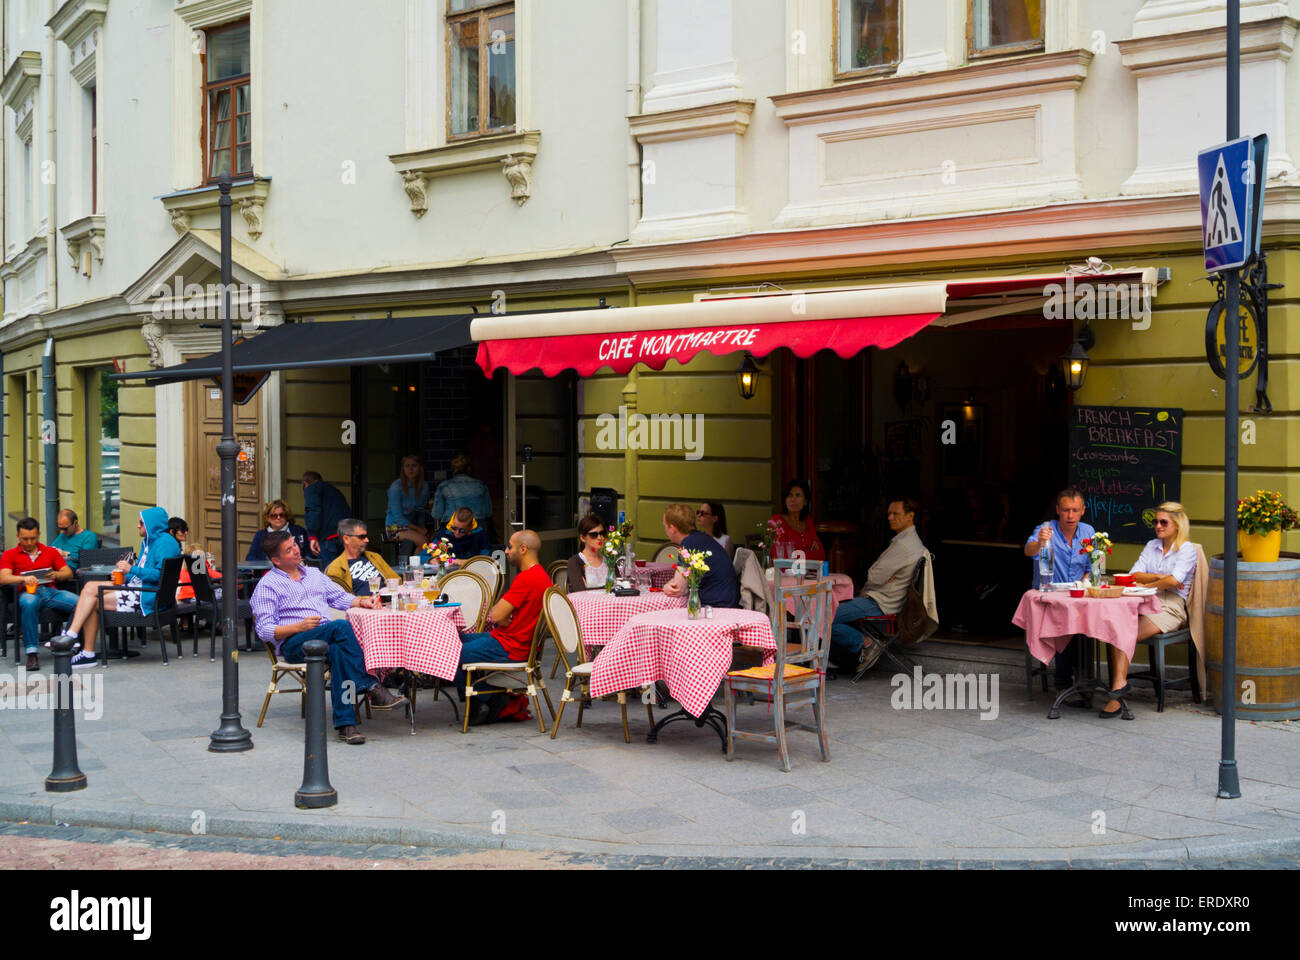 Cafe terraces, old town, Vilnius, Lithuania, Europe - Stock Image